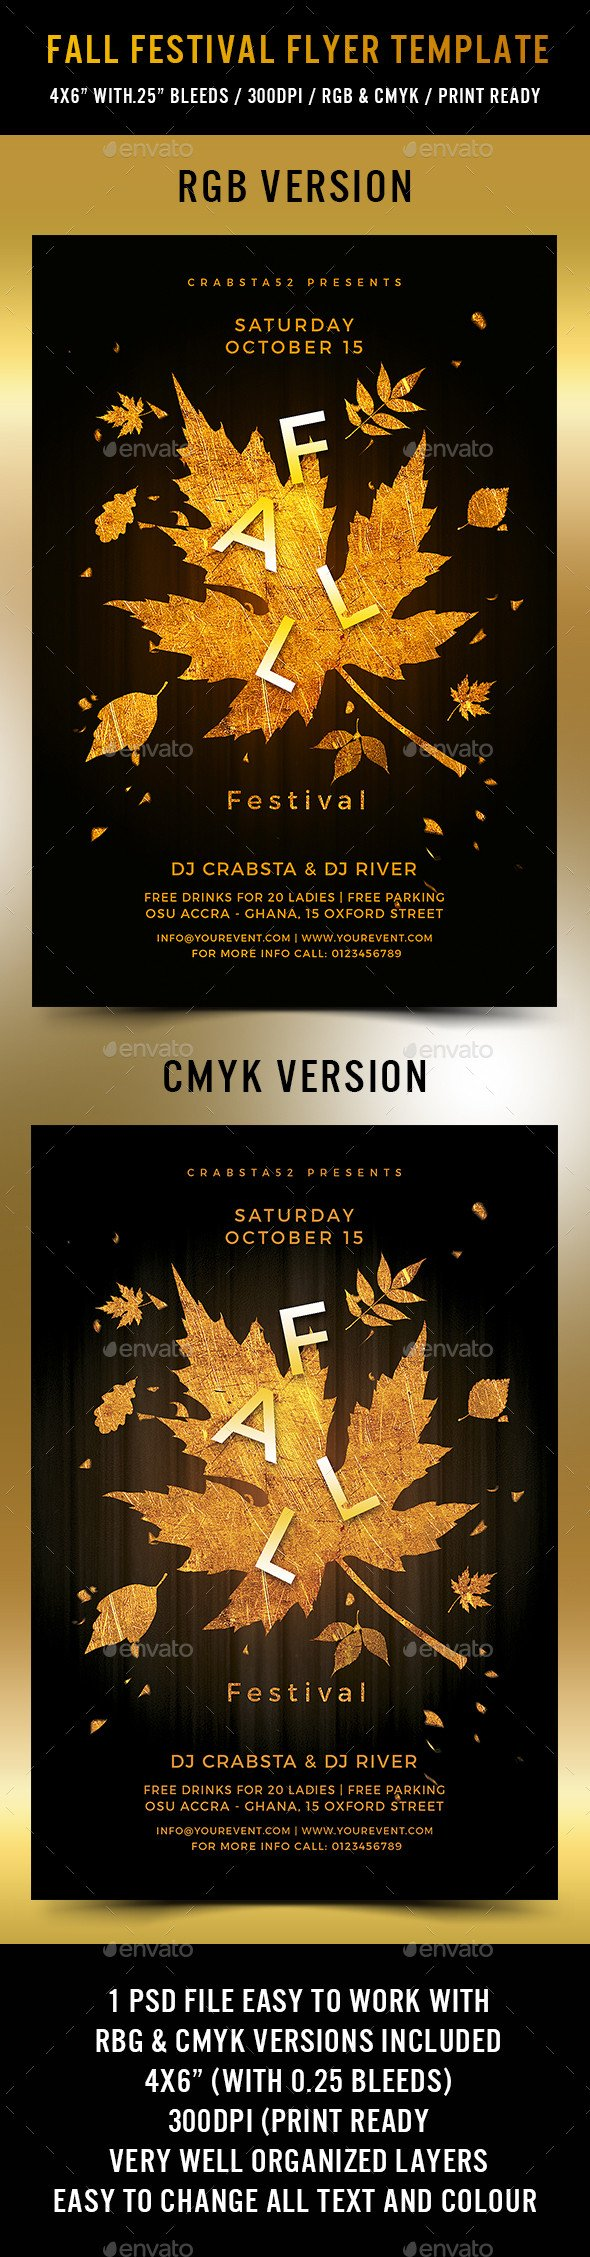 Fall Festival Flyers Template Fall Festival Flyer Template by Crabsta52